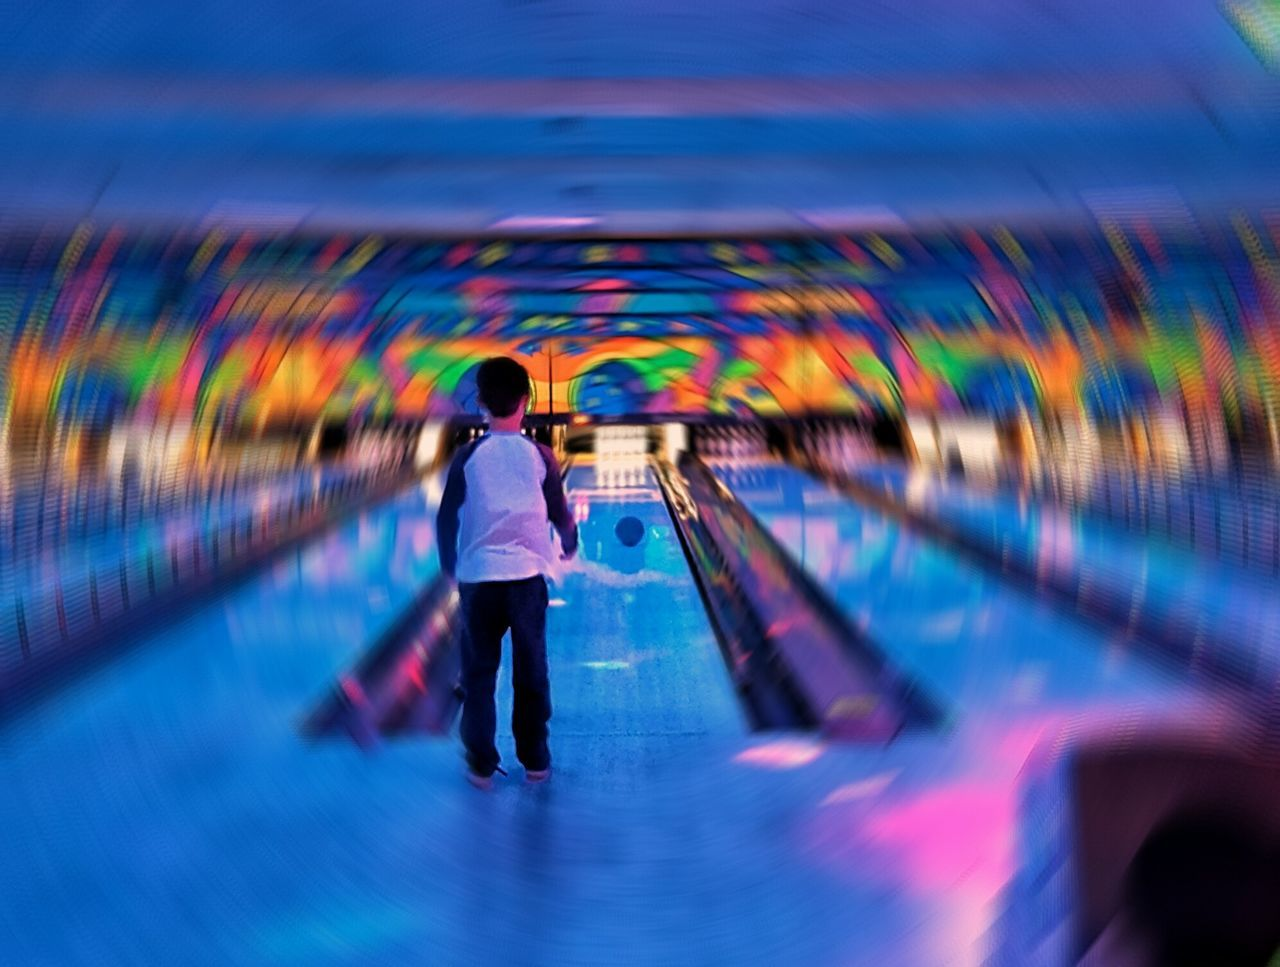 One Person Multi Colored Bowling Alley Bowling Psychedelic Illuminated